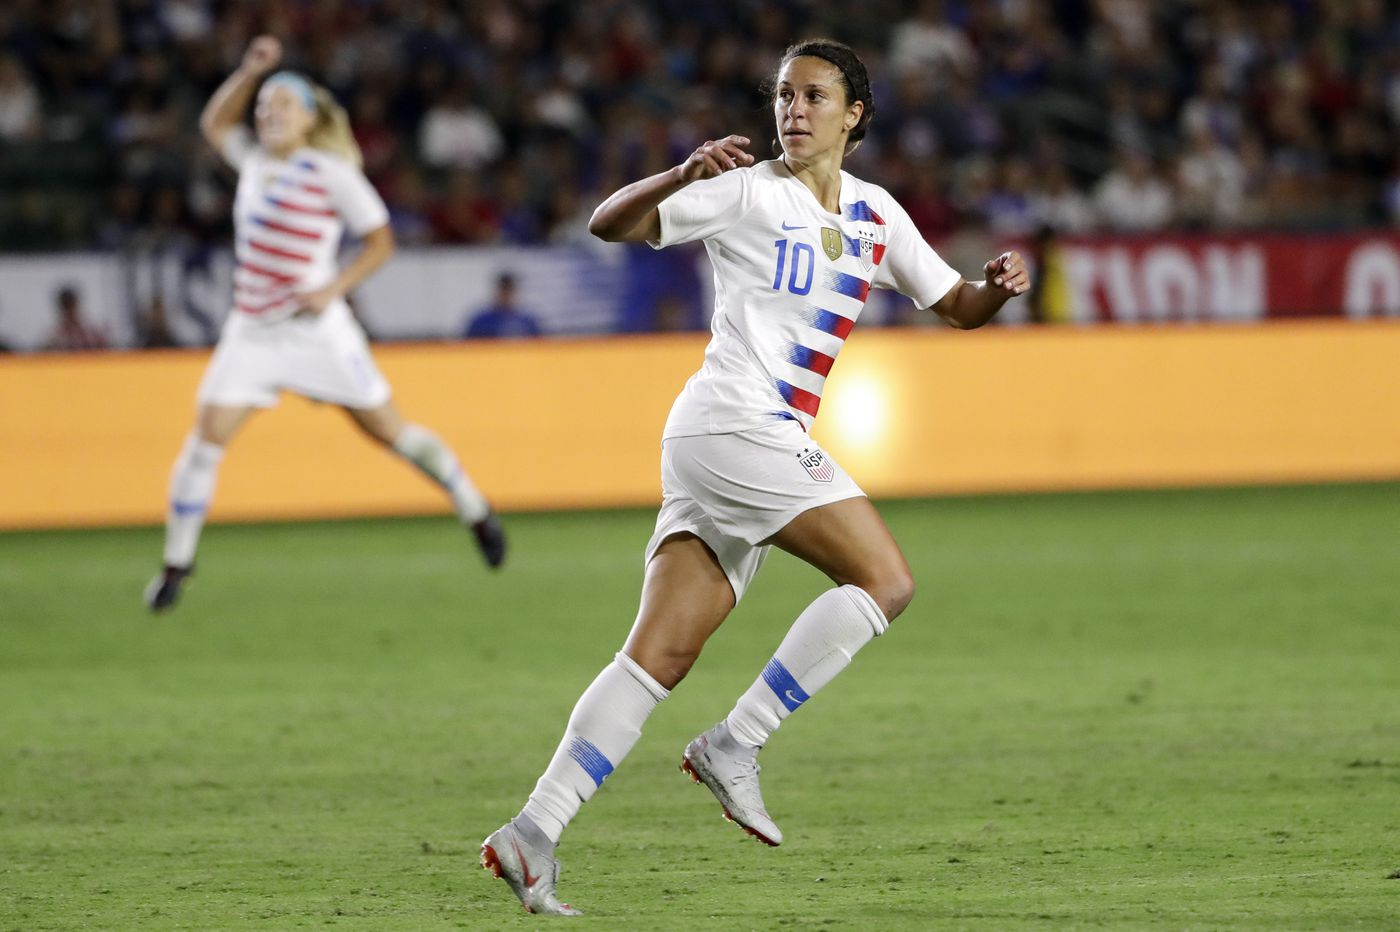 9fc99b7b14d Carli Lloyd hat trick helps U.S. women's national team rout Panama 5-0 in  World Cup qualifying